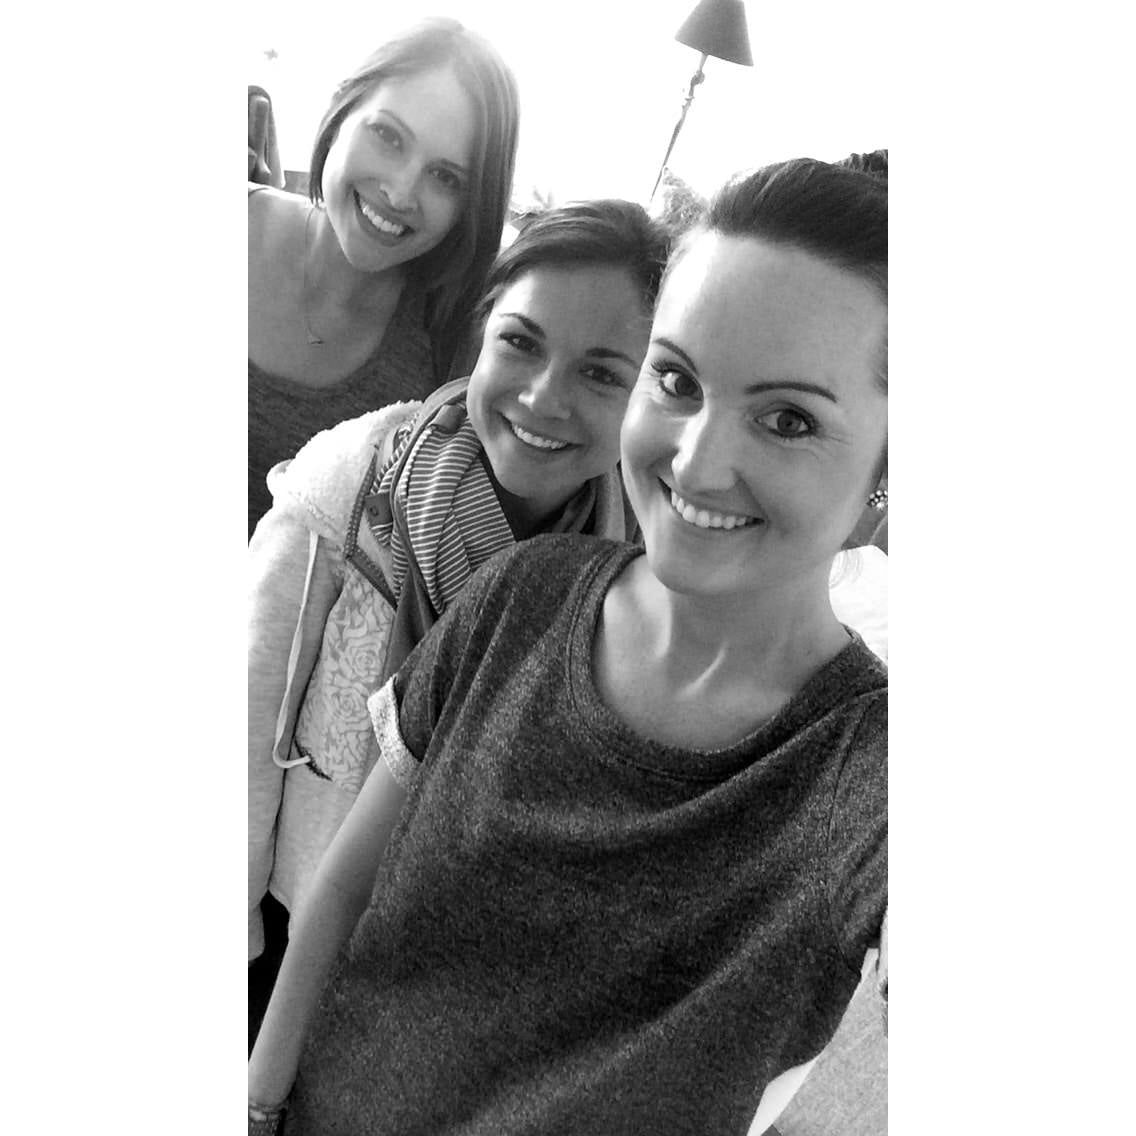 brooke ruder, marissa hagmeyer, heather byrne, home organizers, home organizers in chicago, girls selfie, neat method girls, neat girls, brunettes